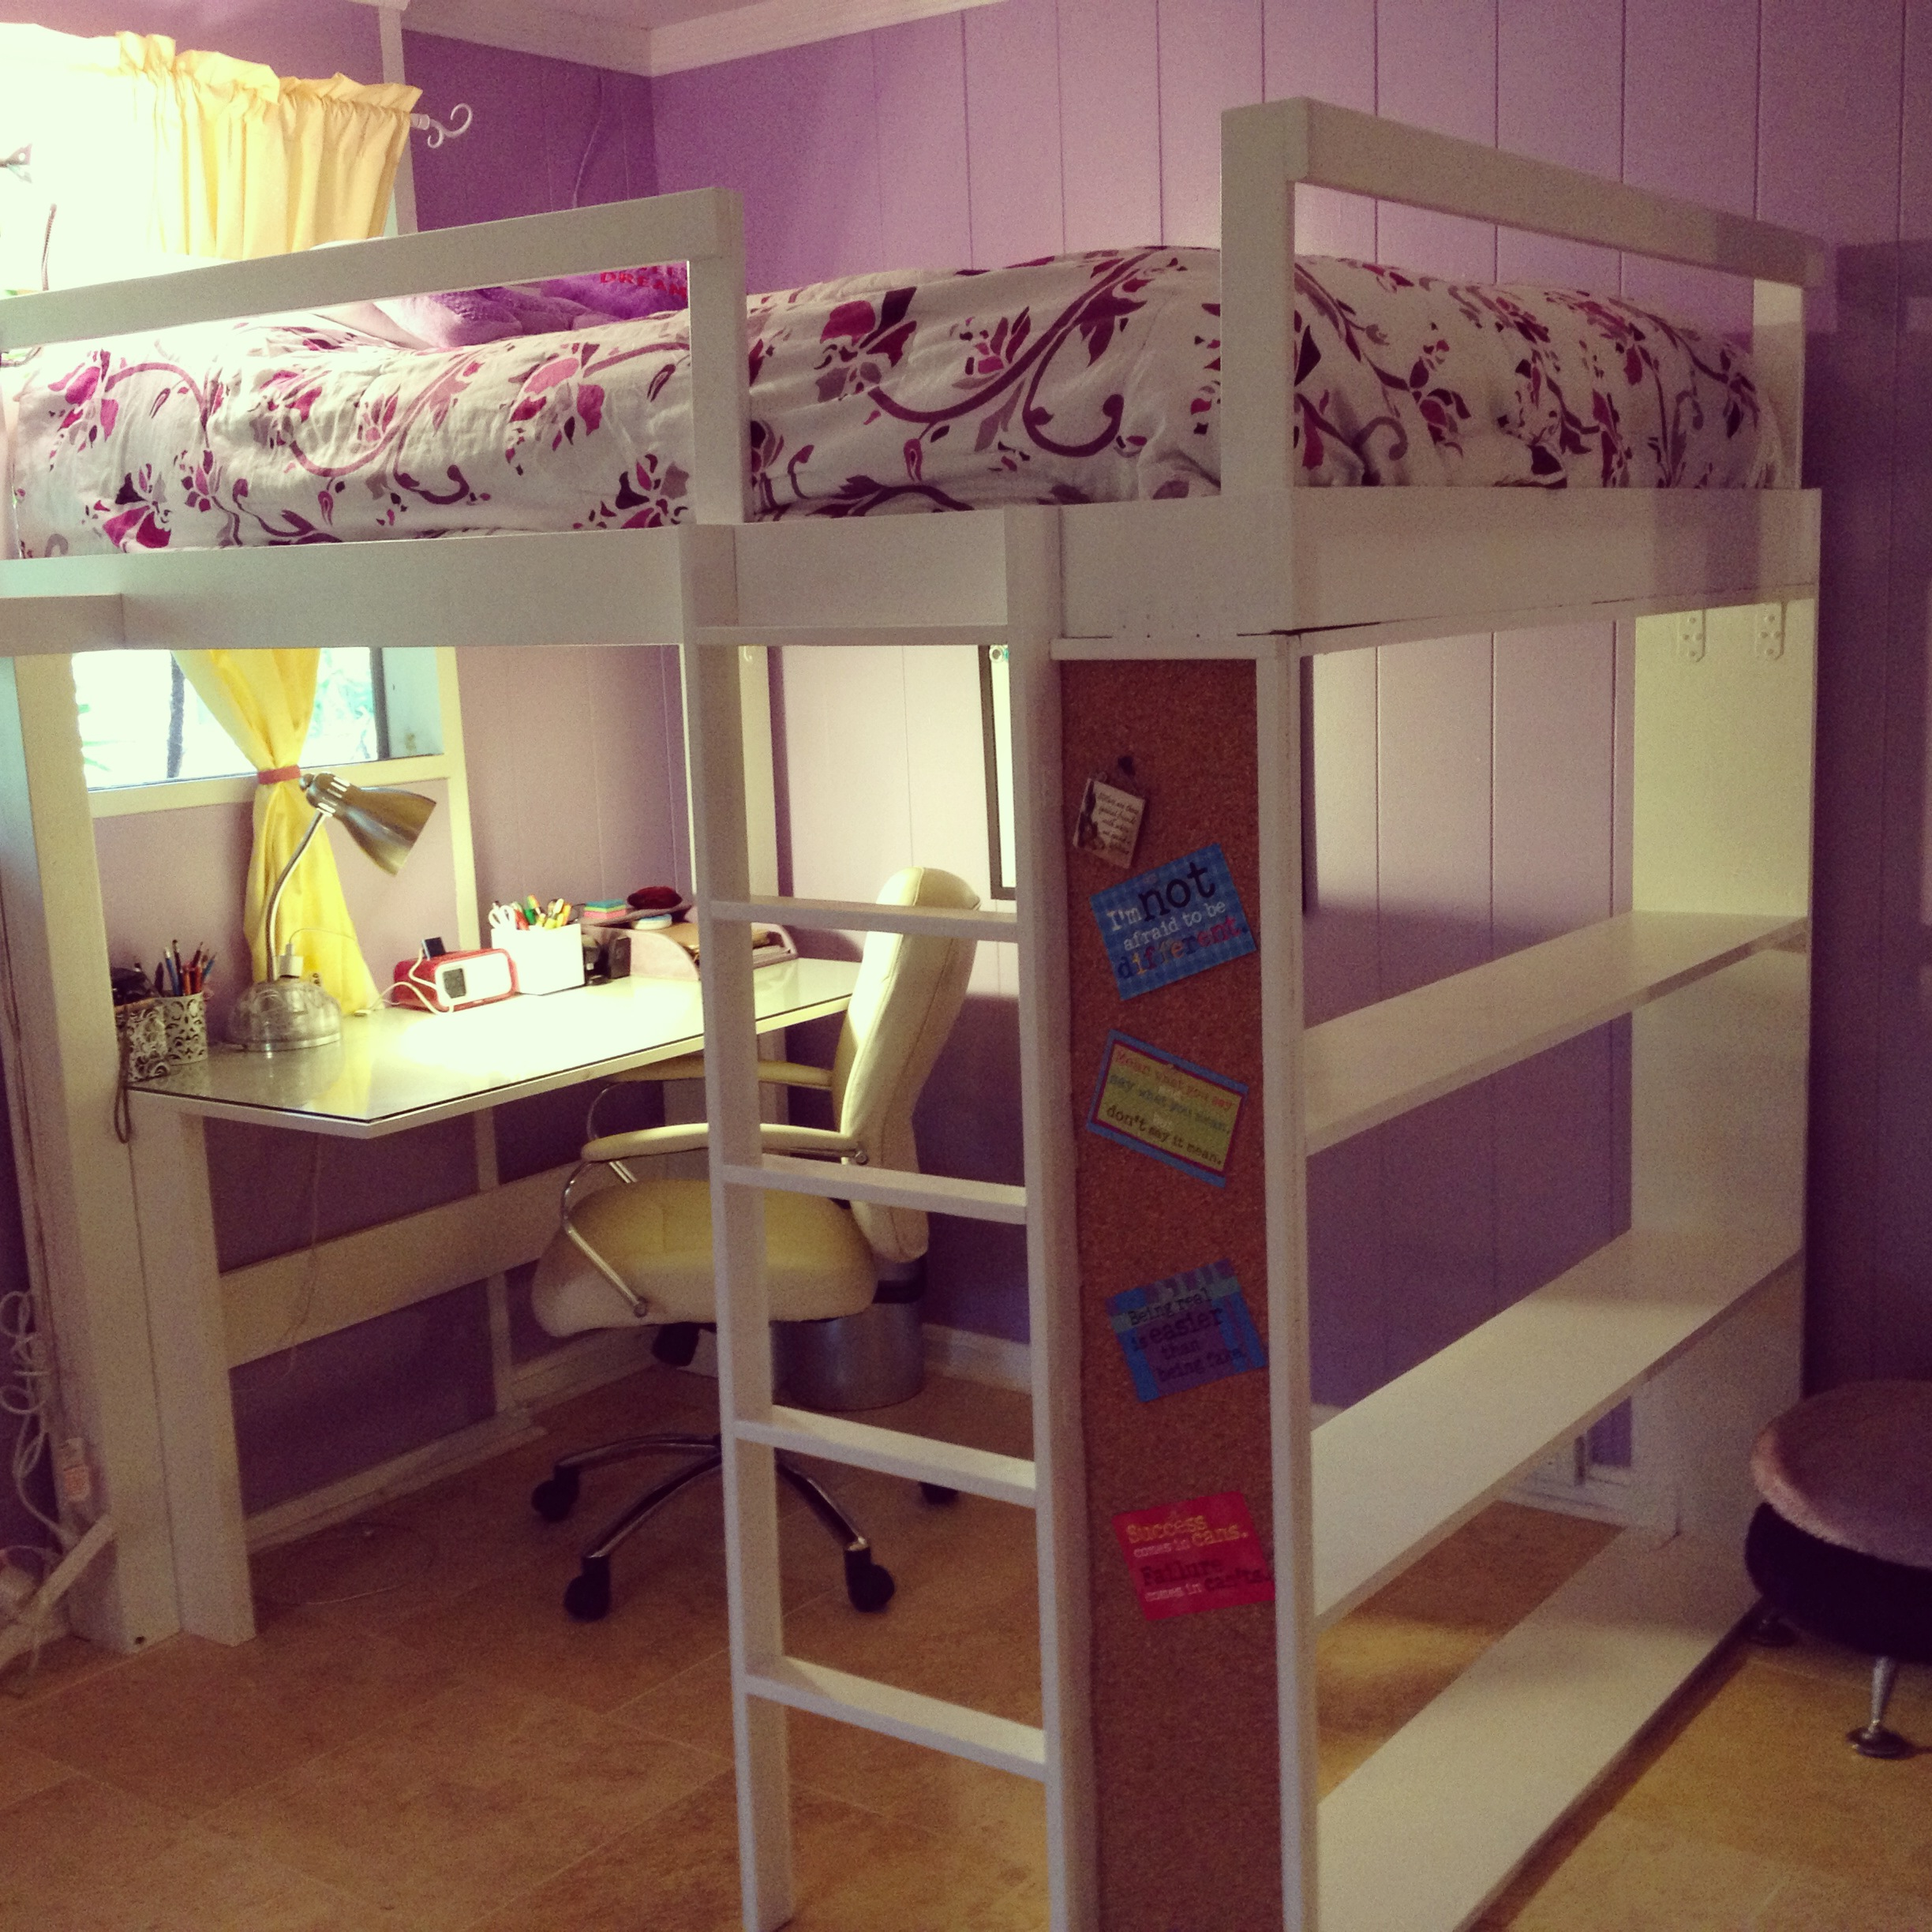 Bunk bed with desk for teenagers - Bunk Bed With Desk For Teenagers 2